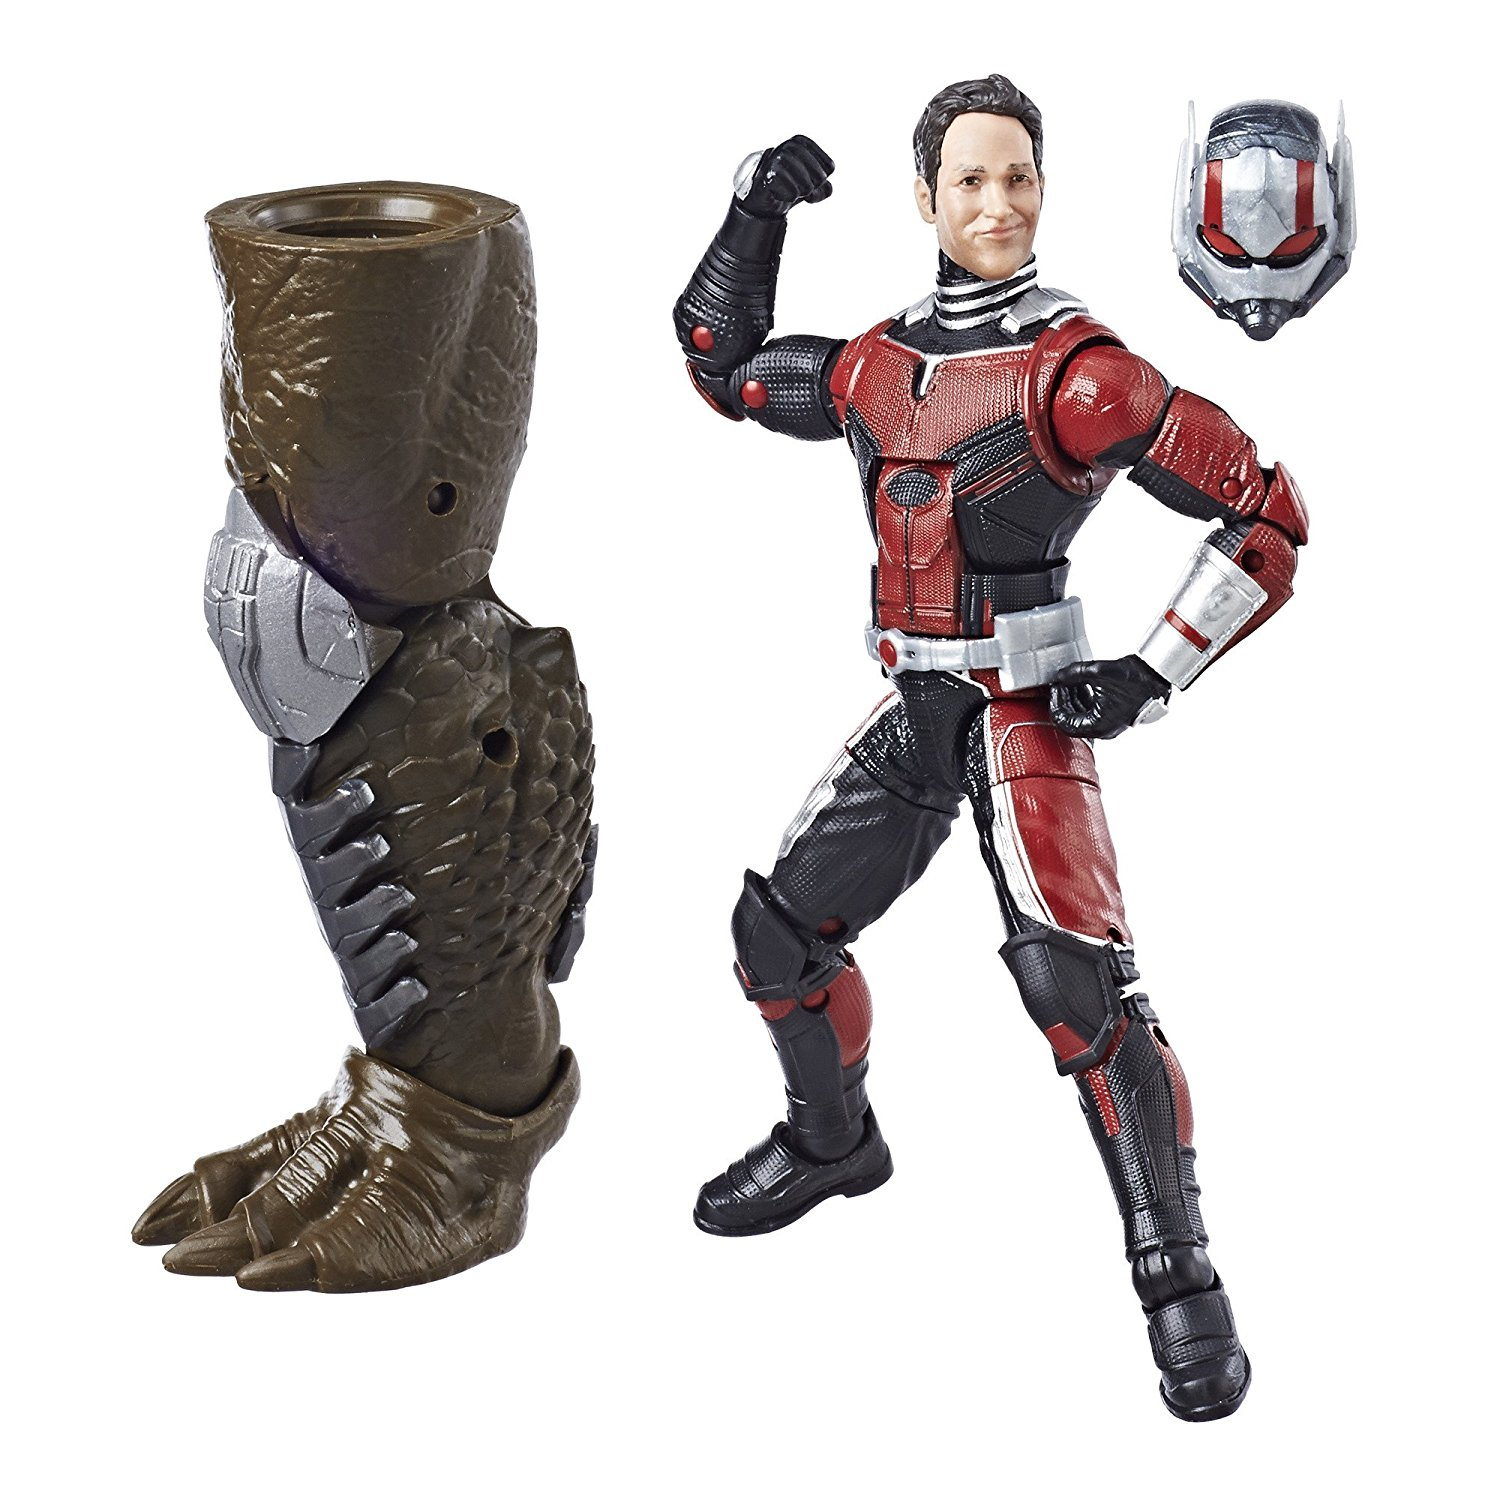 "Marvel Avengers Ant-Man & The Wasp Legends Series Ant-Man 6"" Inch Action Figure"